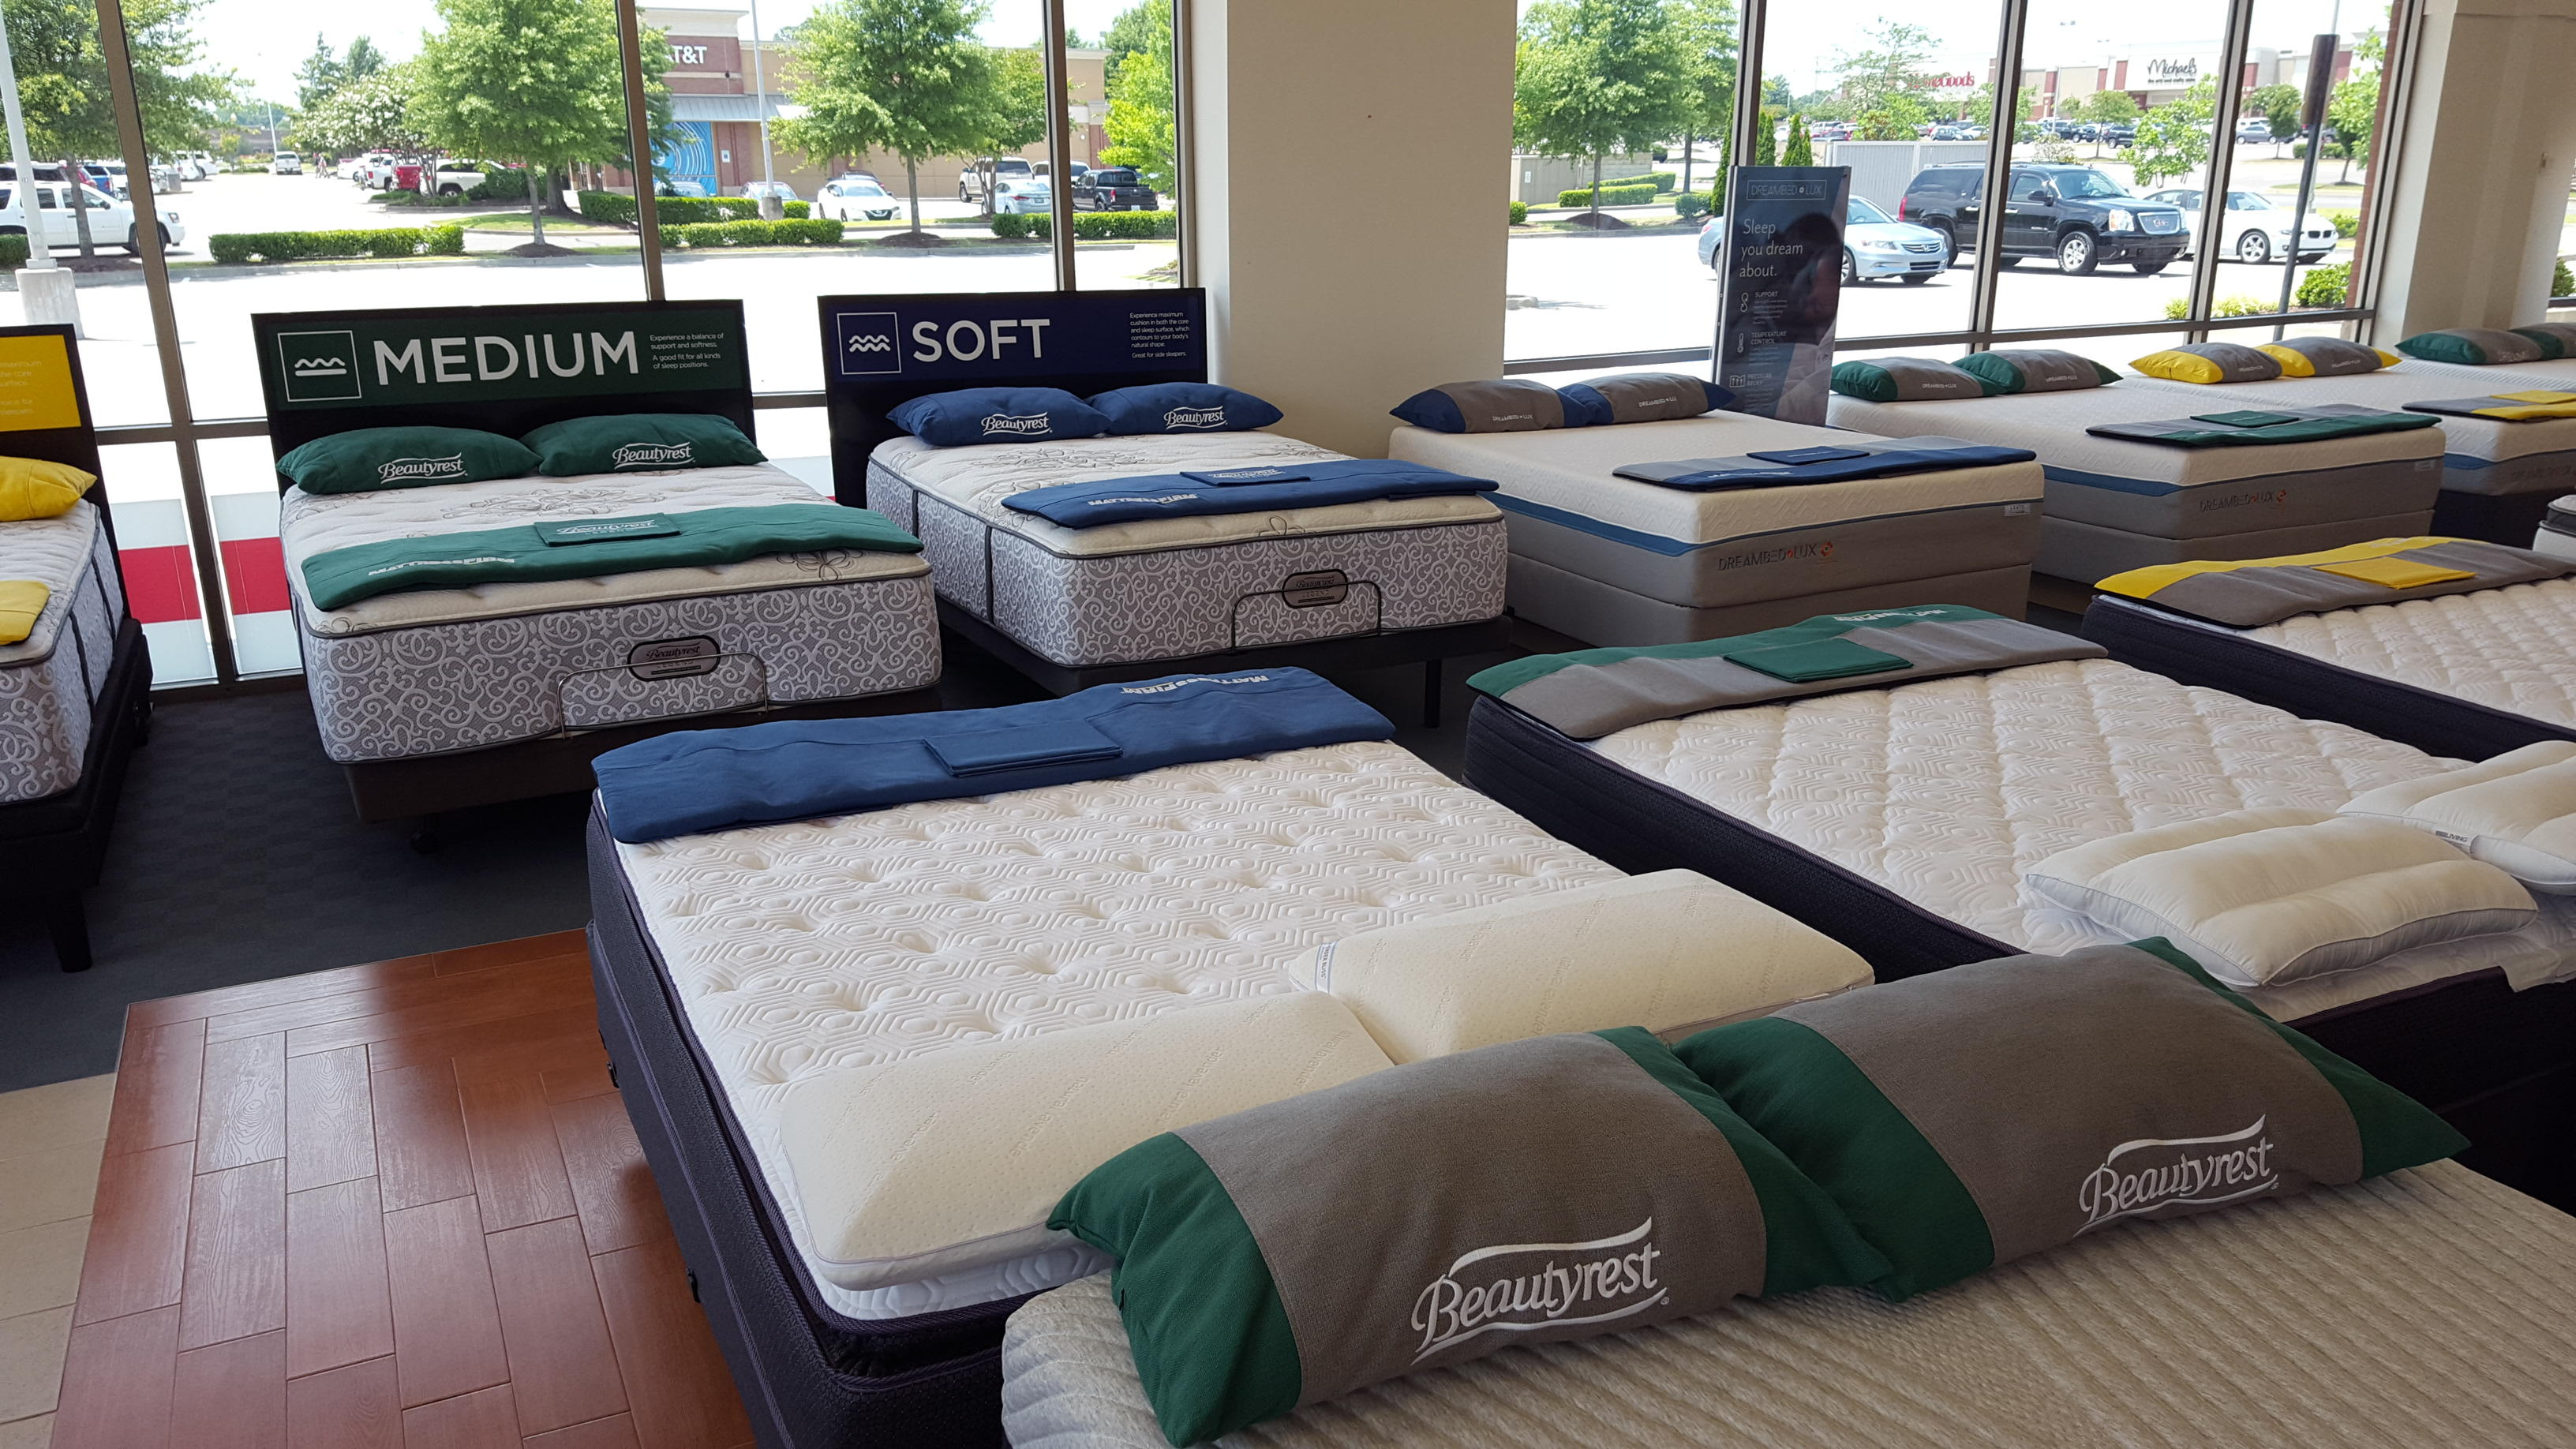 Mattress Firm Wedge Olive Branch image 8